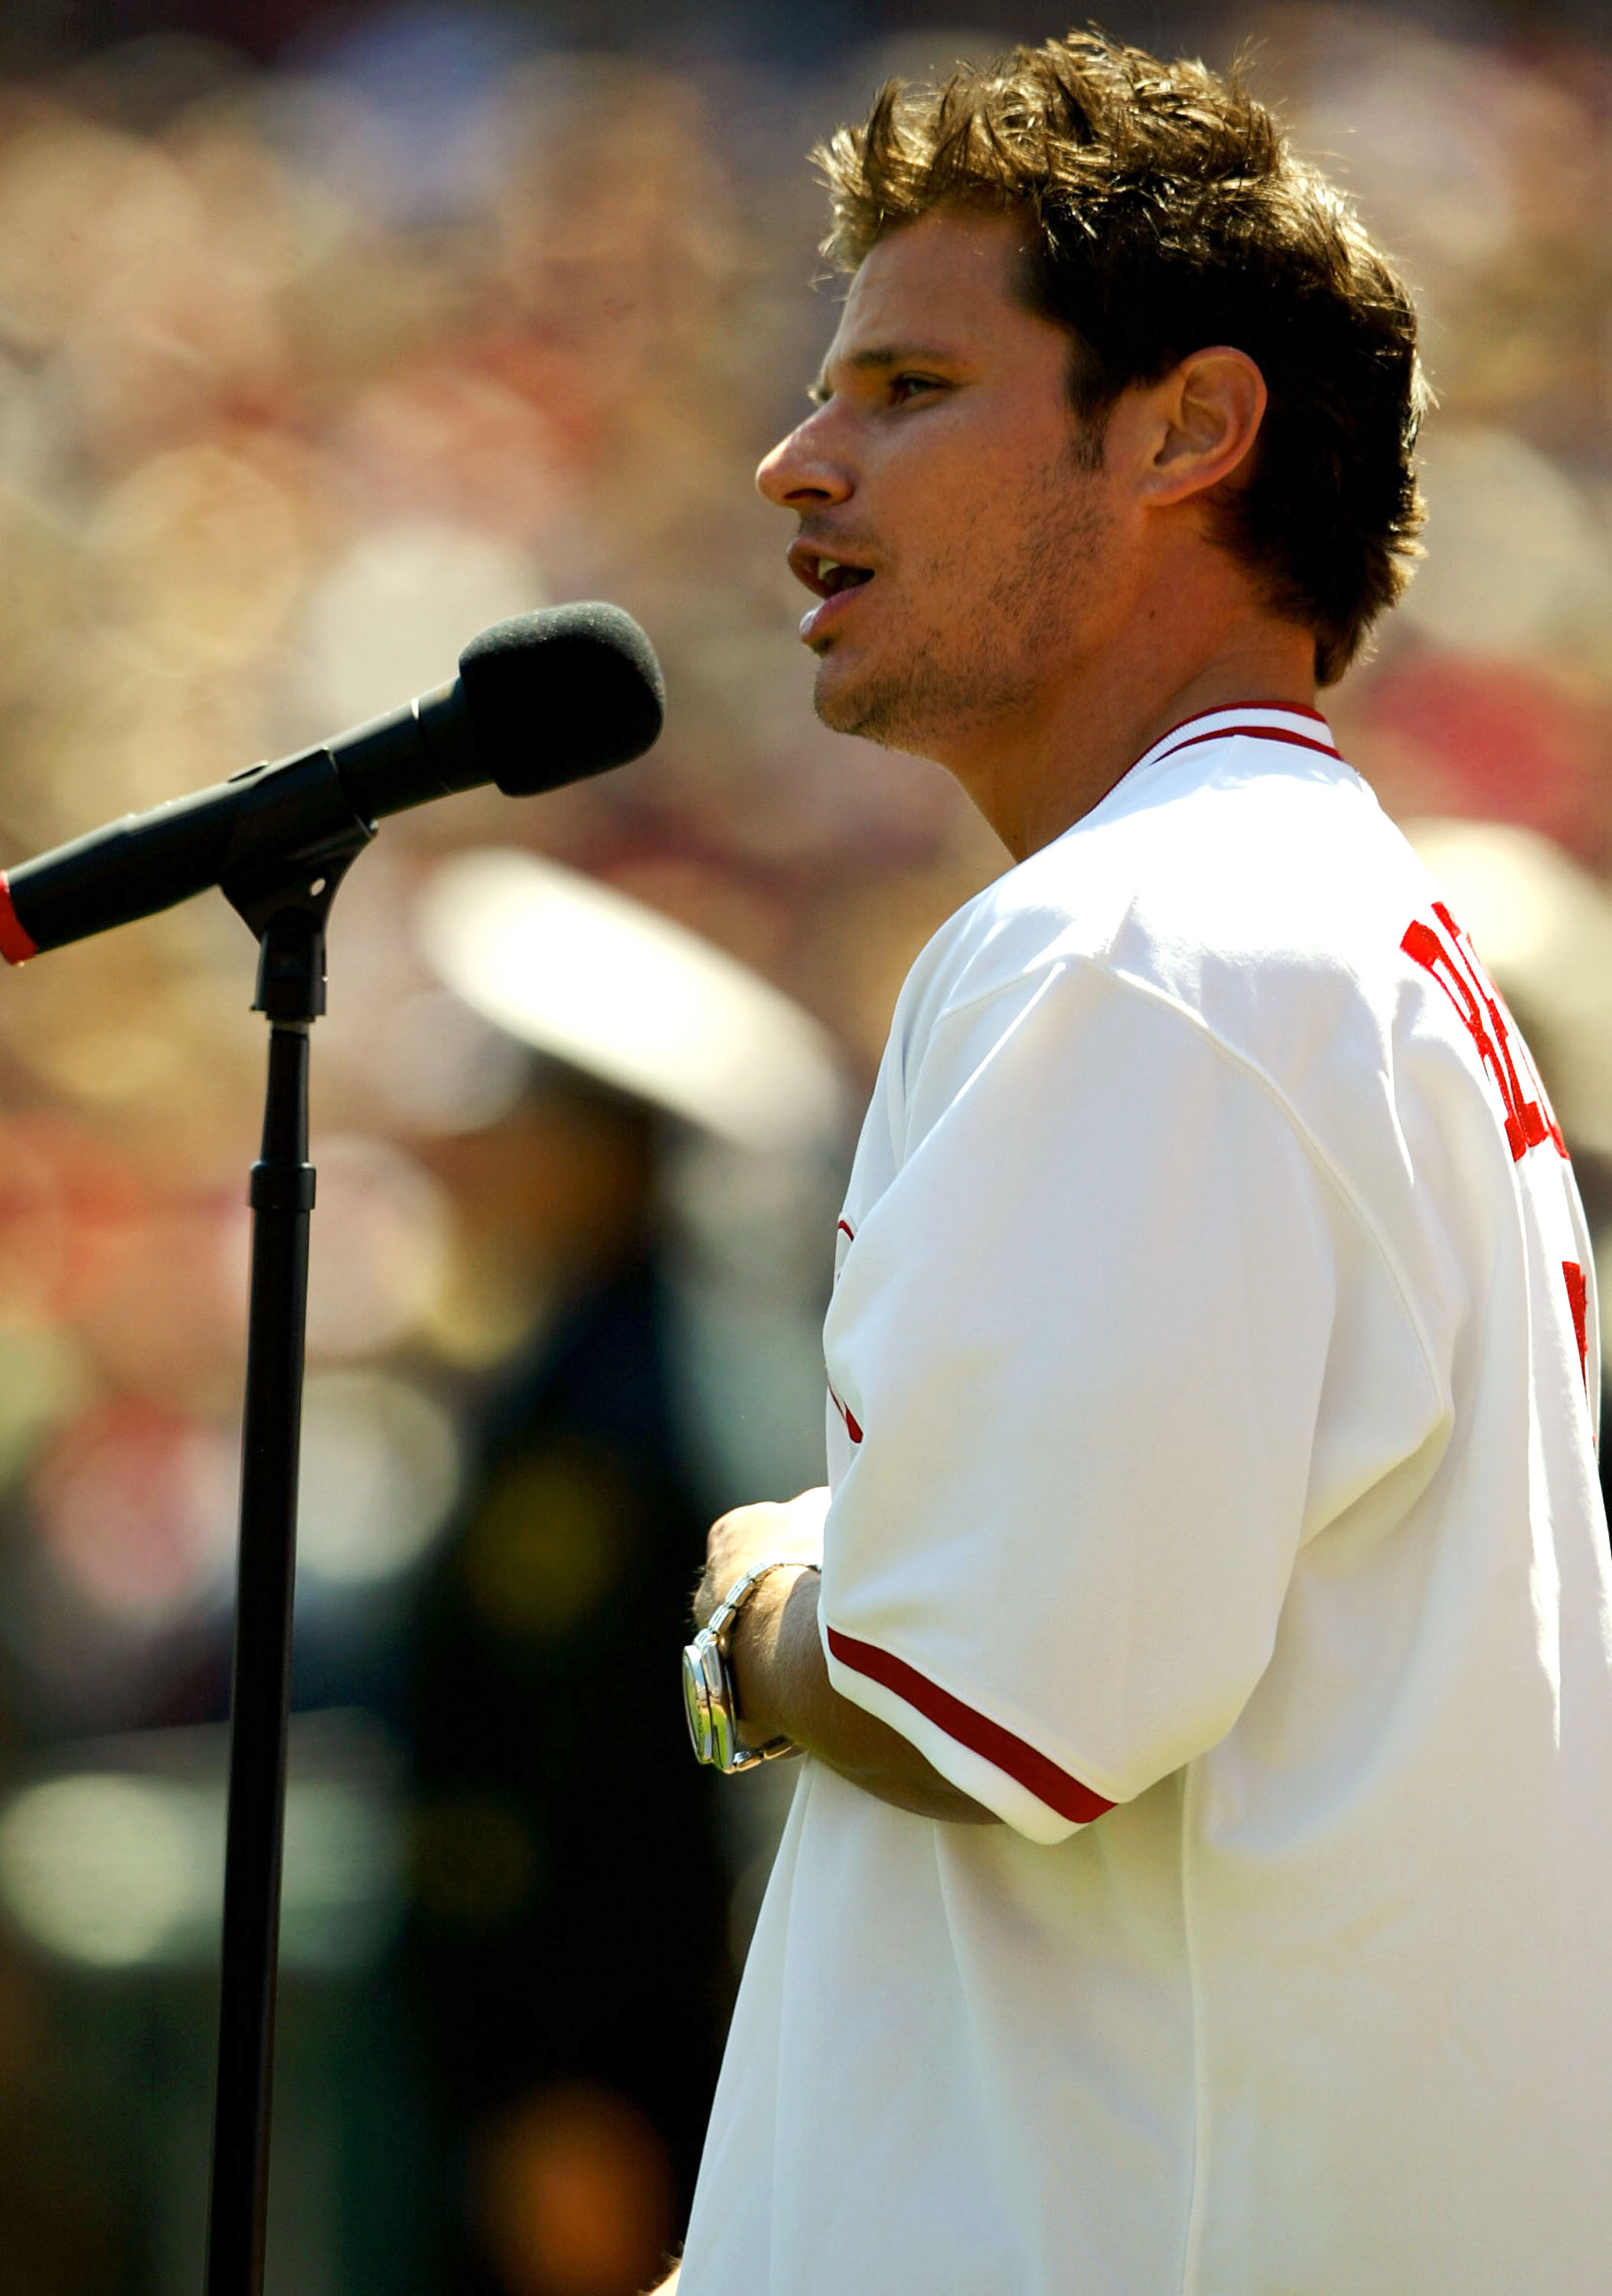 CINCINNATI - APRIL 5:  Nick Lachey, a native of Cincinnati, sings the National Anthem before the start of the National League game between the Cincinnati Reds and the Chicago Cubs on April 5, 2004 at Great American Ballpark in Cincinnati, Ohio.  (Photo by